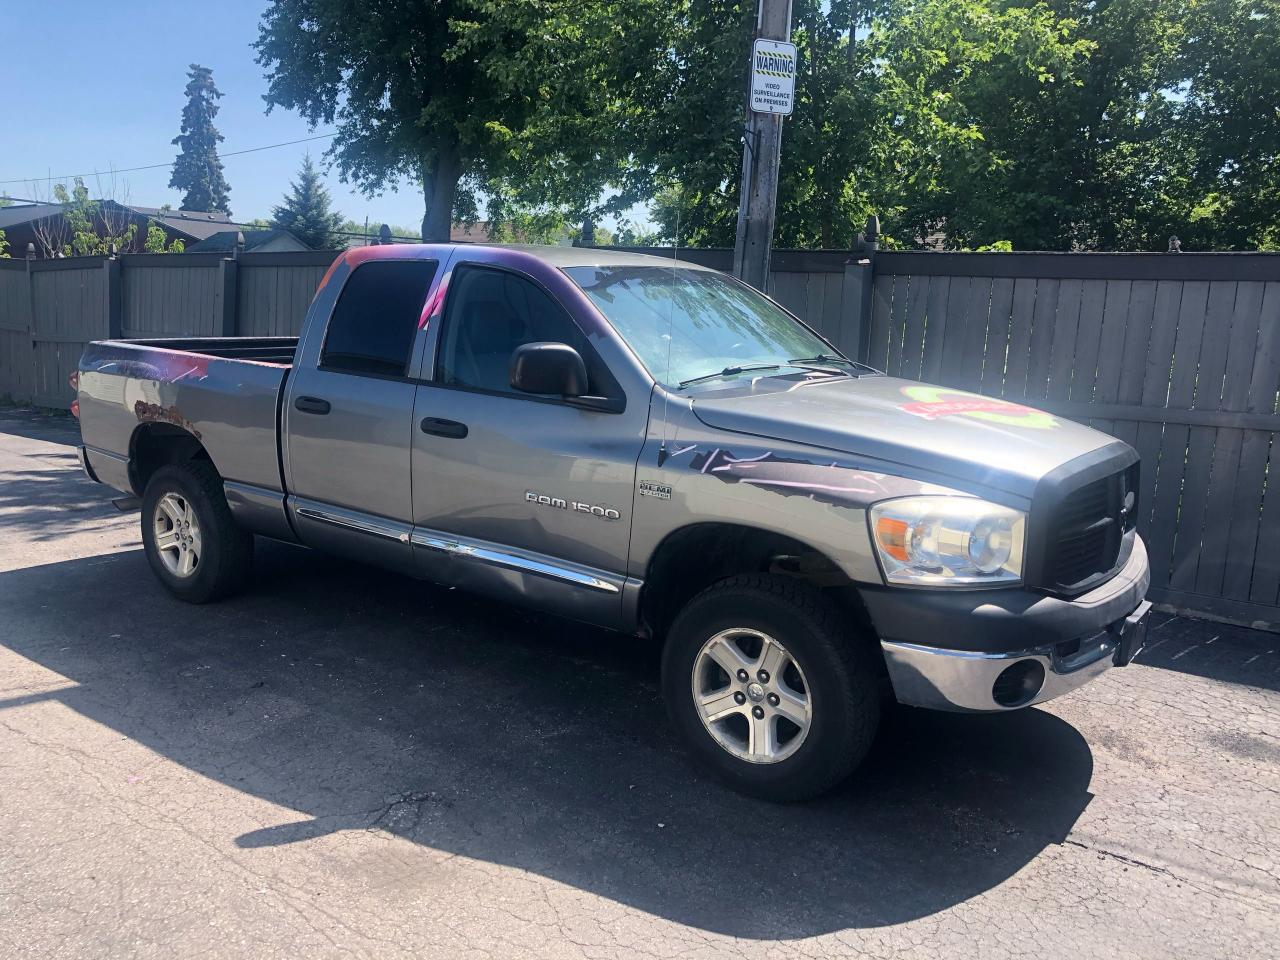 used 2007 dodge ram 1500 st for sale in sutton, ontario carpages.ca